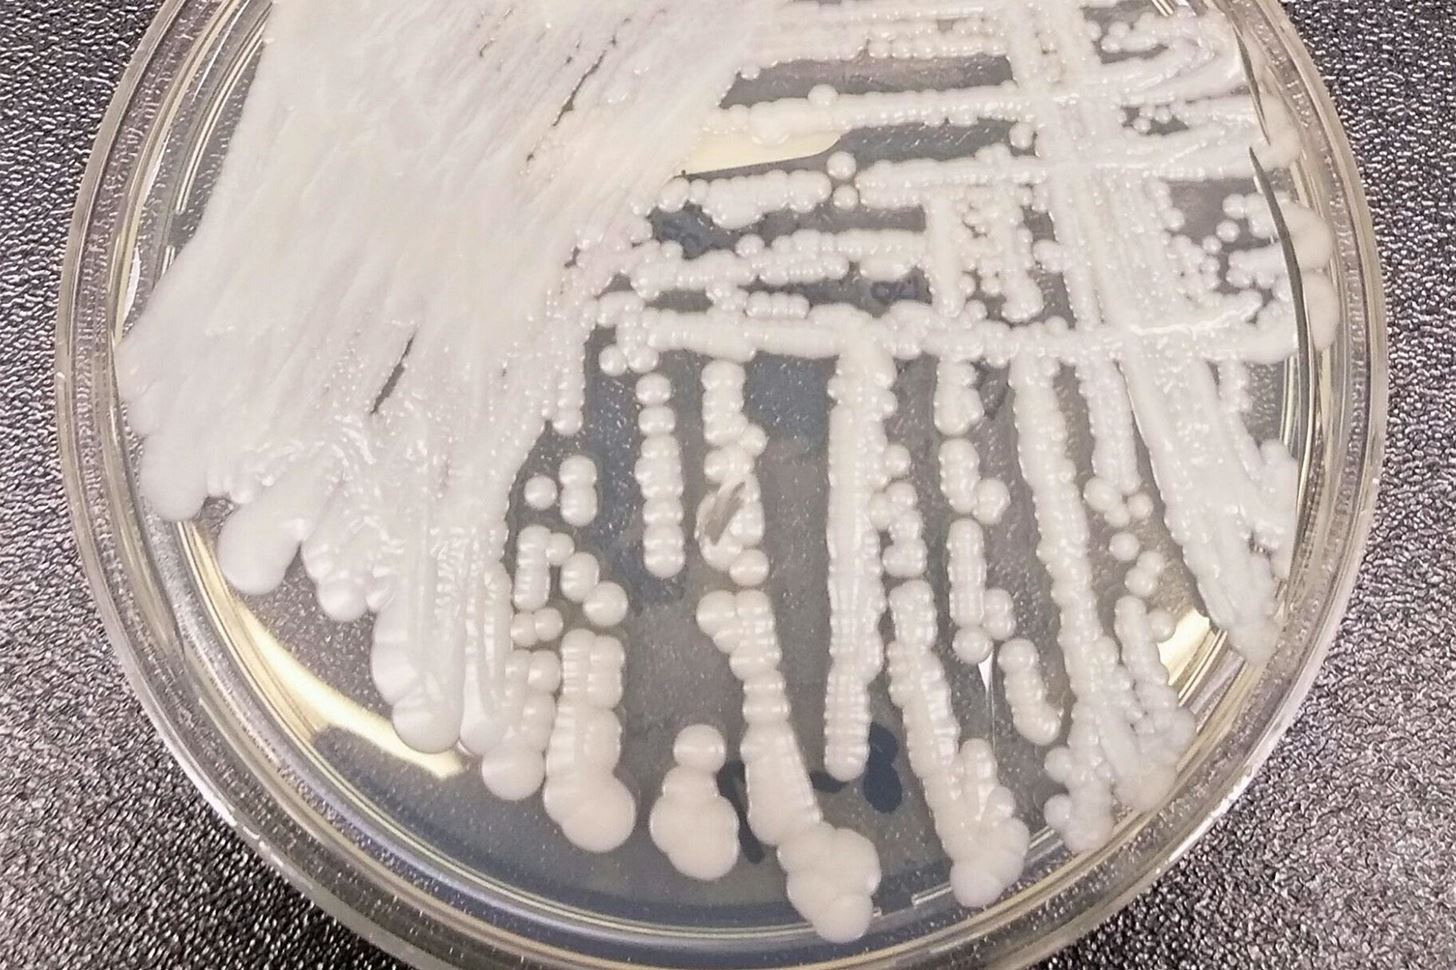 Fungal Superbug Strikes Again, Hits NYC & JC Hospitals Hard